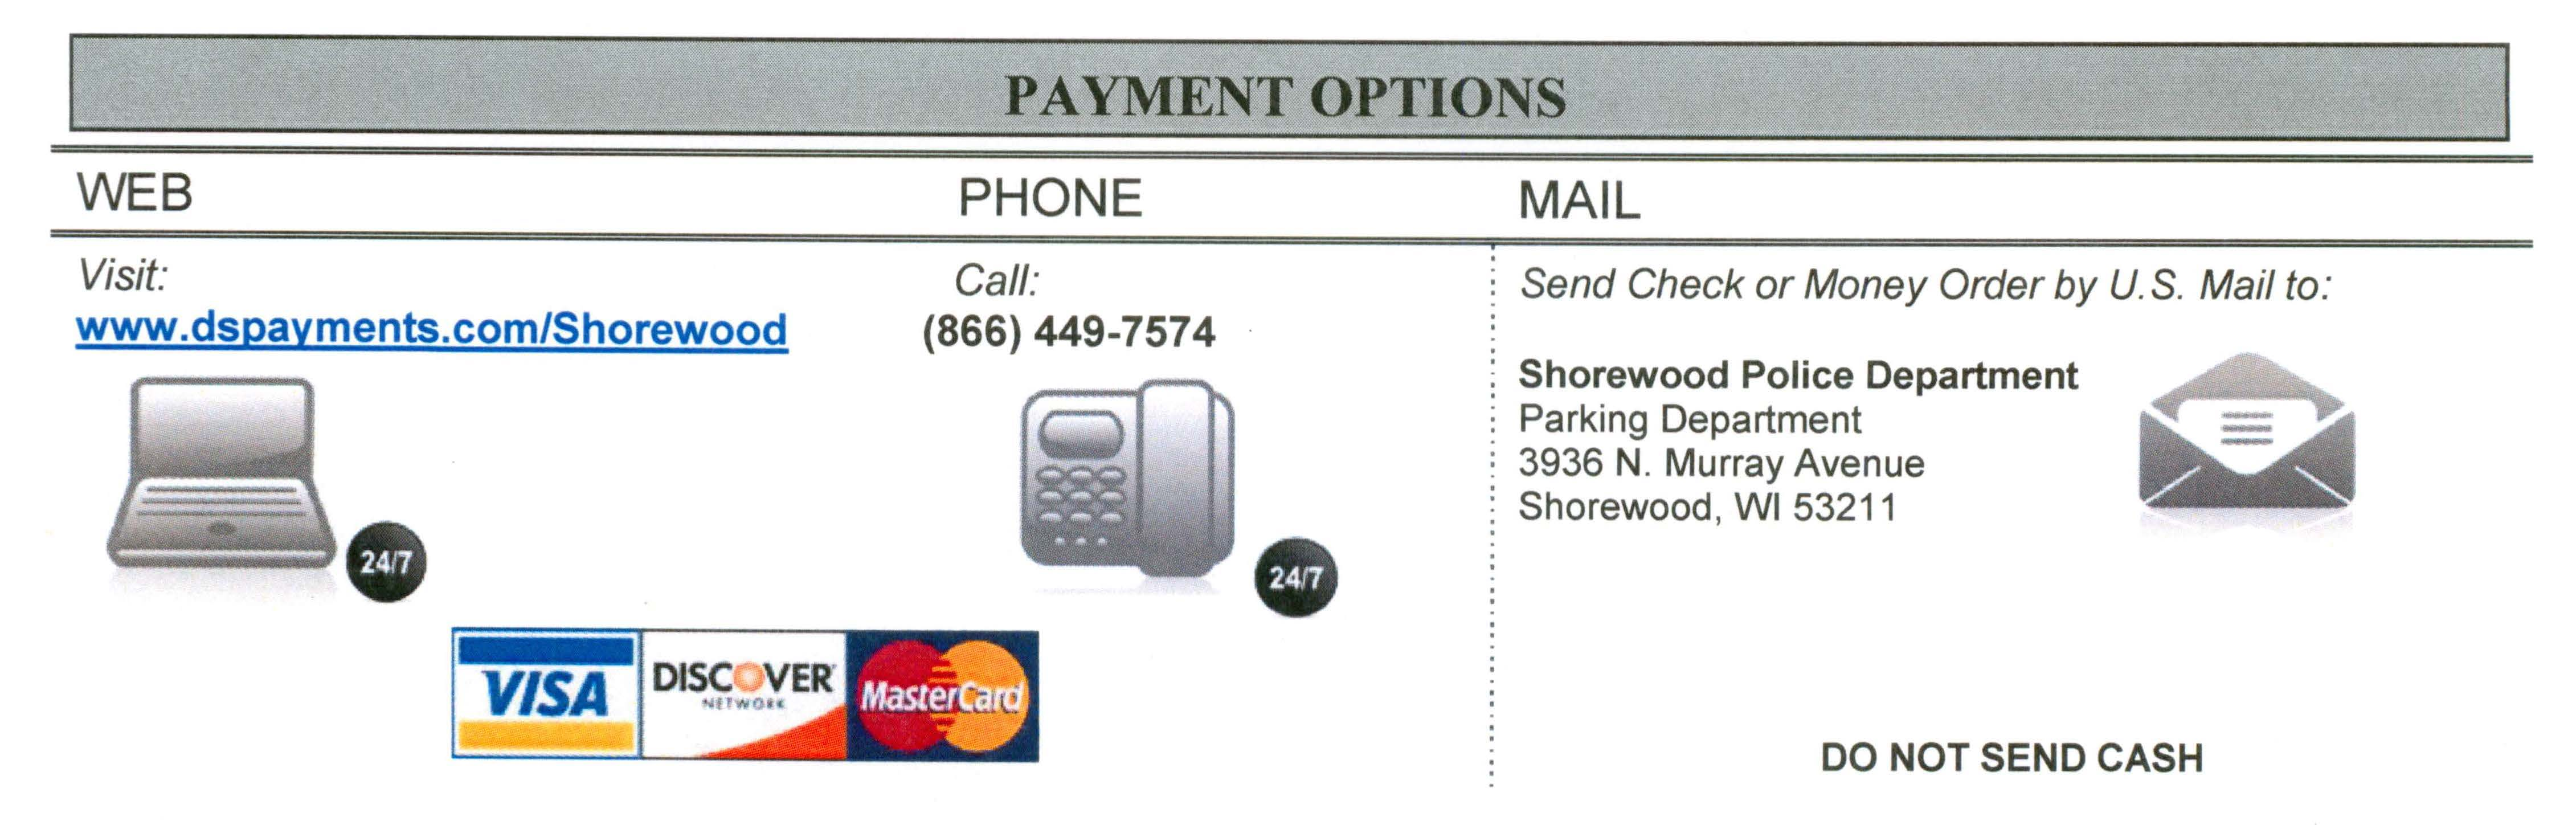 payment options_Redacted